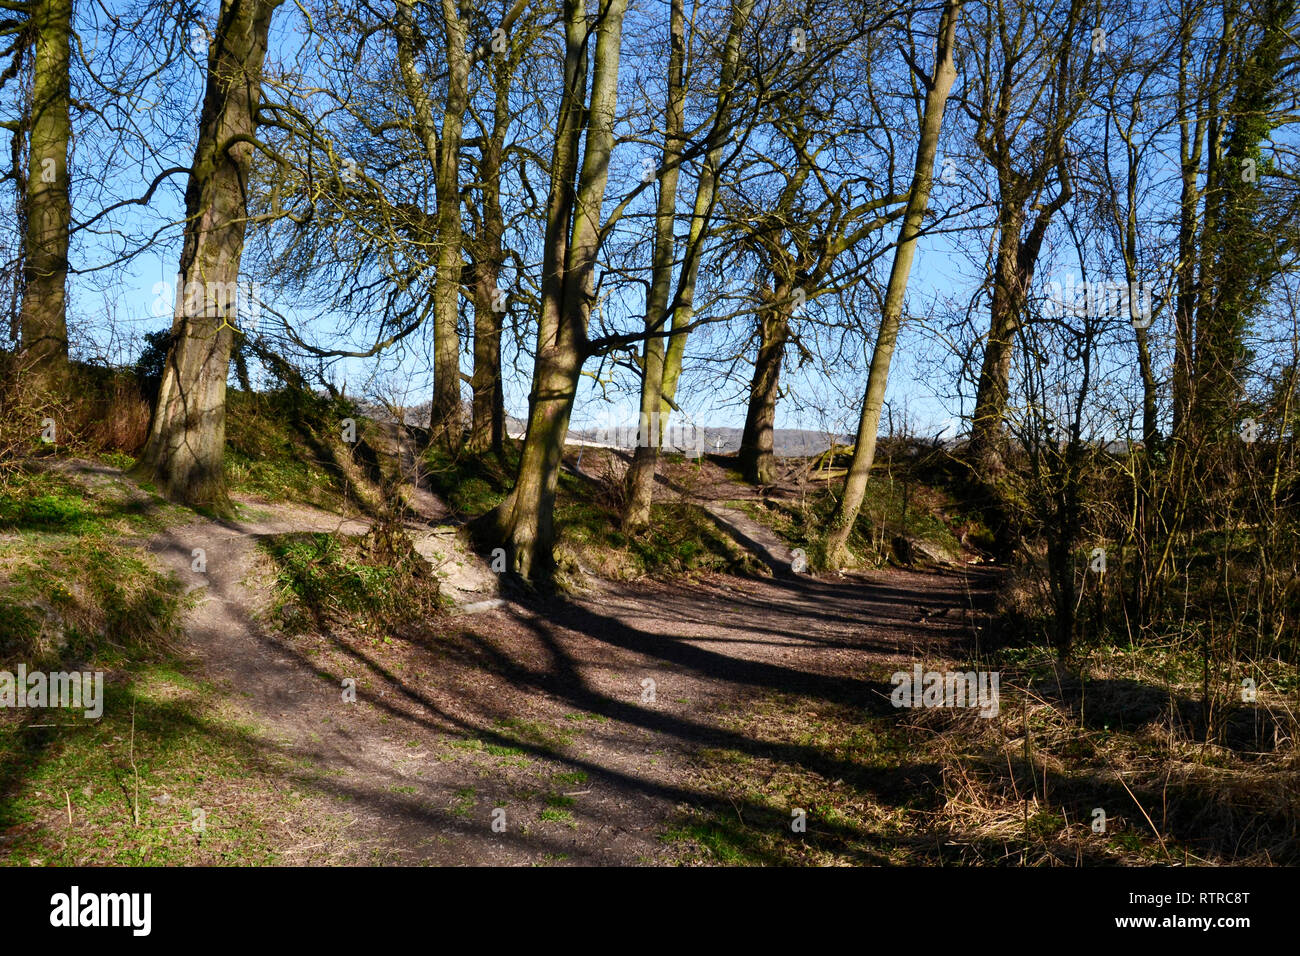 Princes Risborough, Buckinghamshire, UK - Stock Image